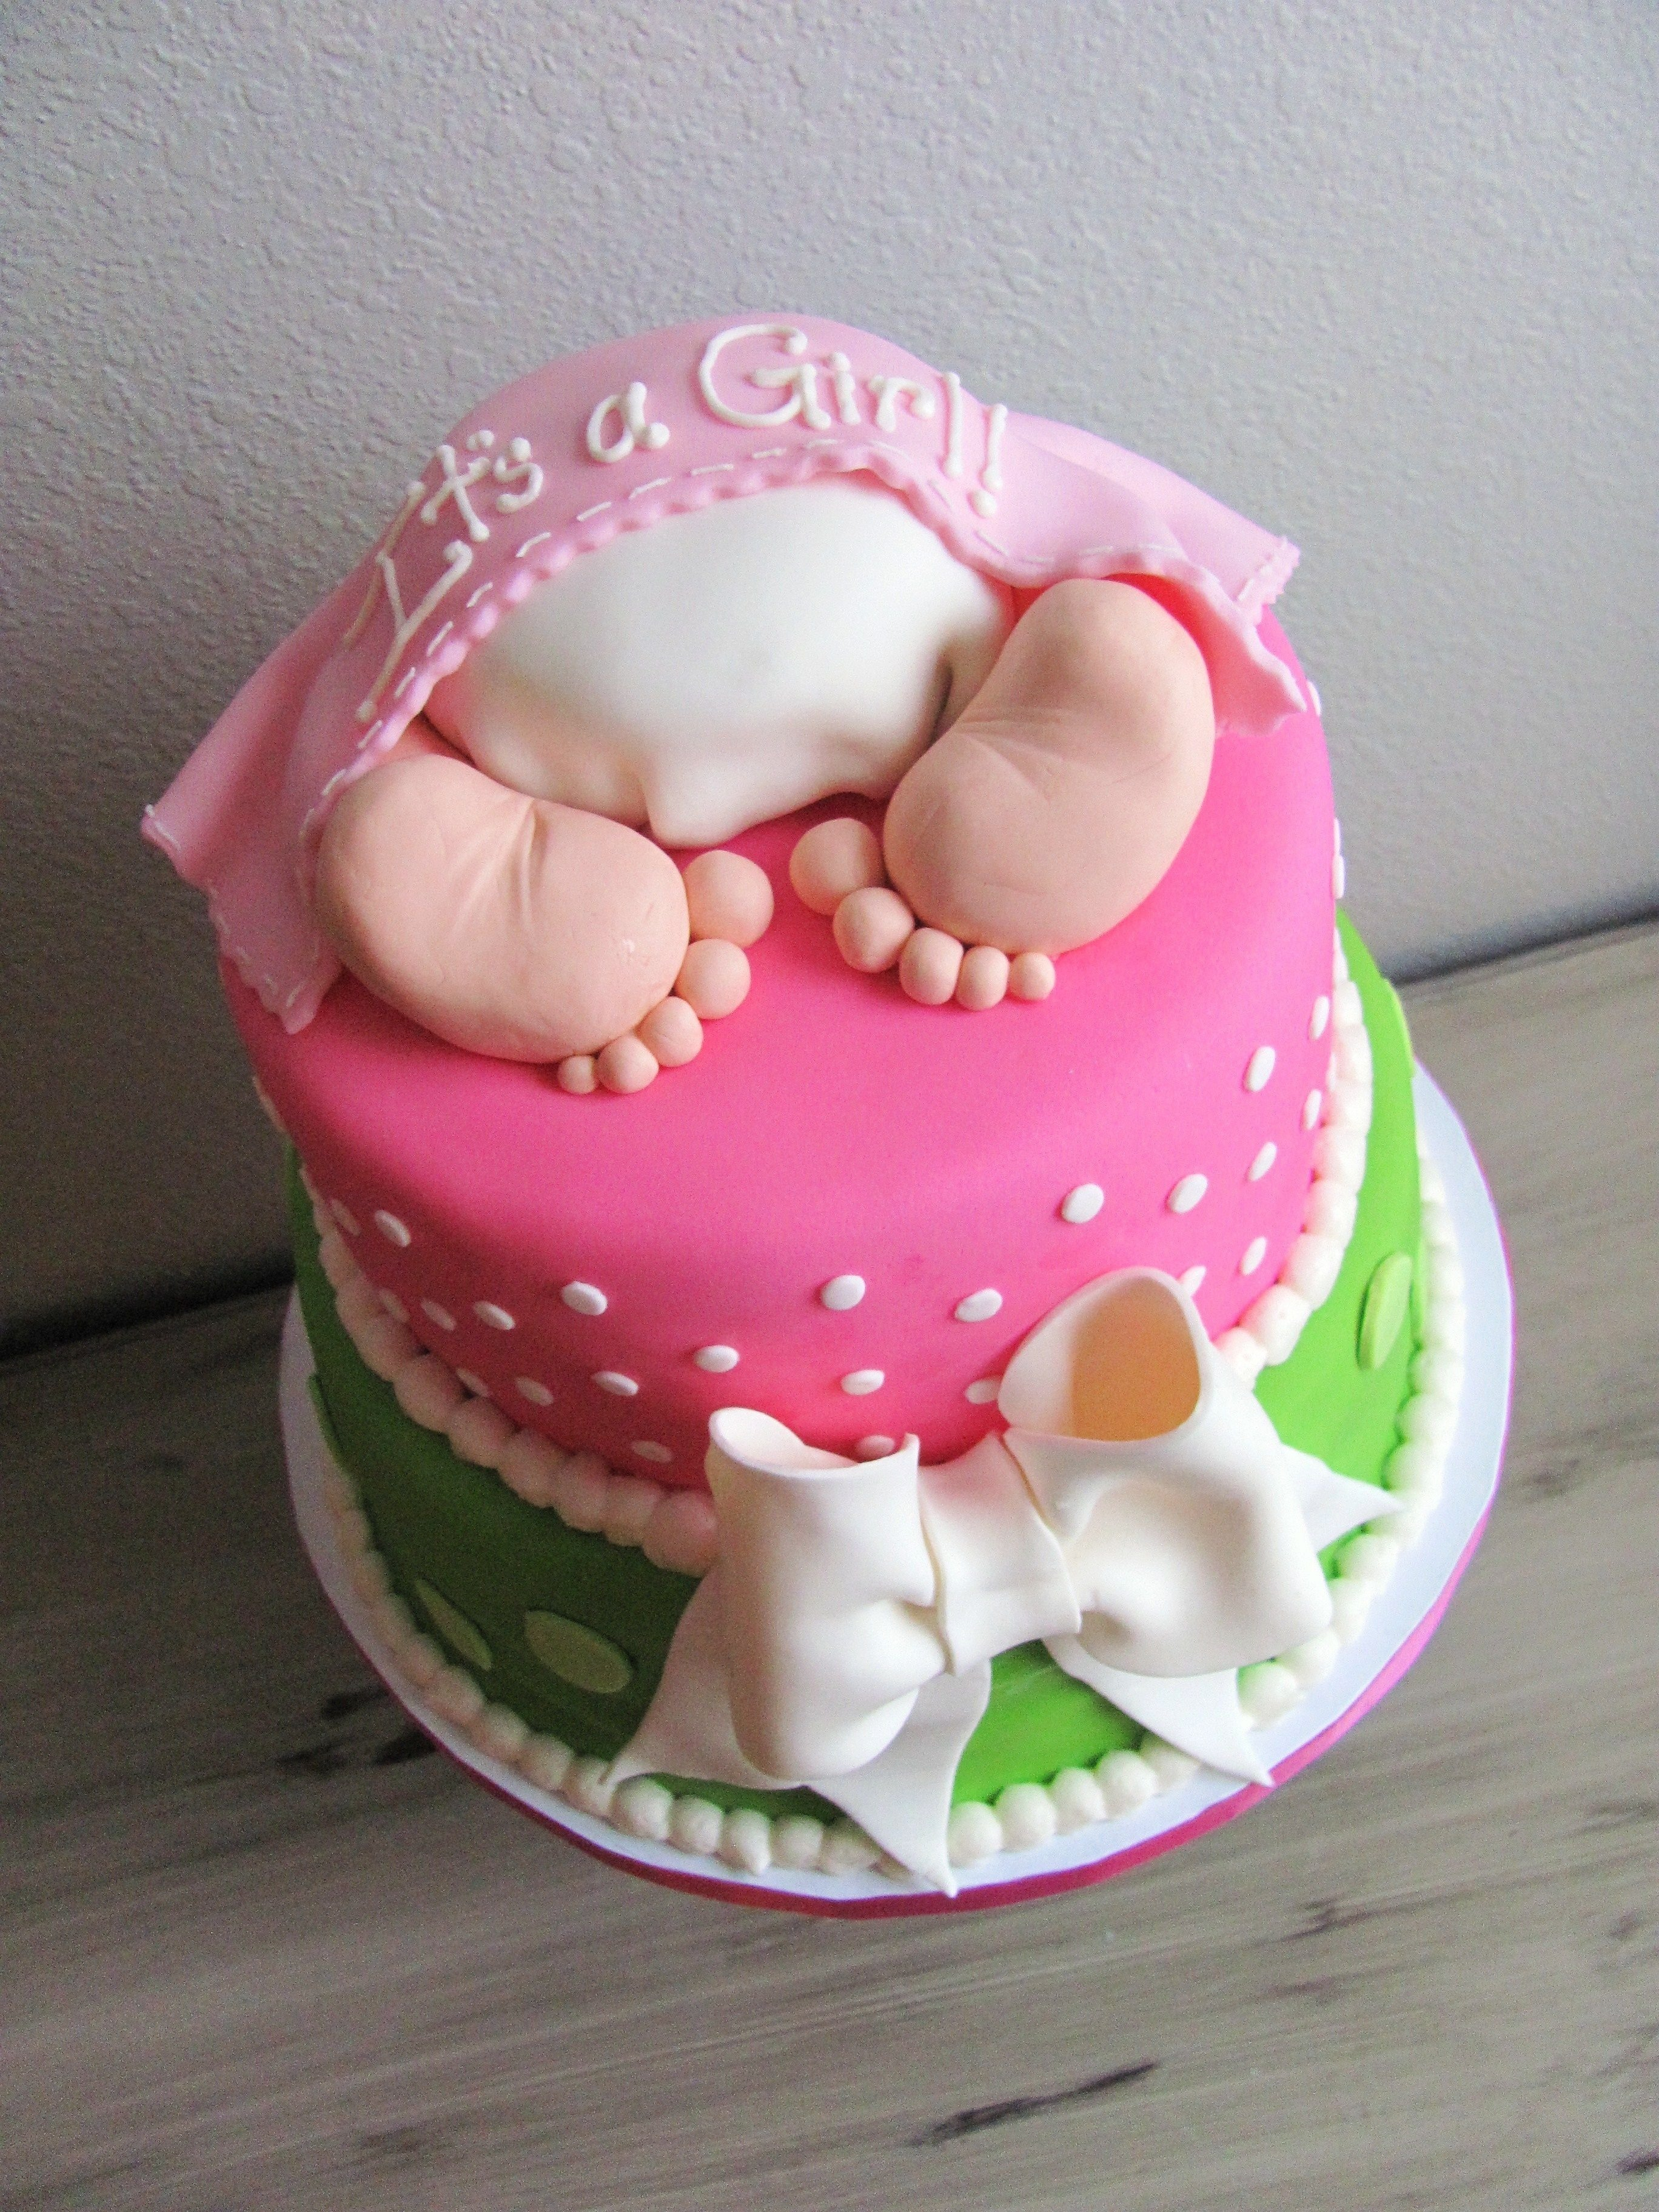 10 Perfect Baby Girl Shower Cake Ideas baby shower cakes for girlpartybabyshower partybabyshower ideas 2 2020